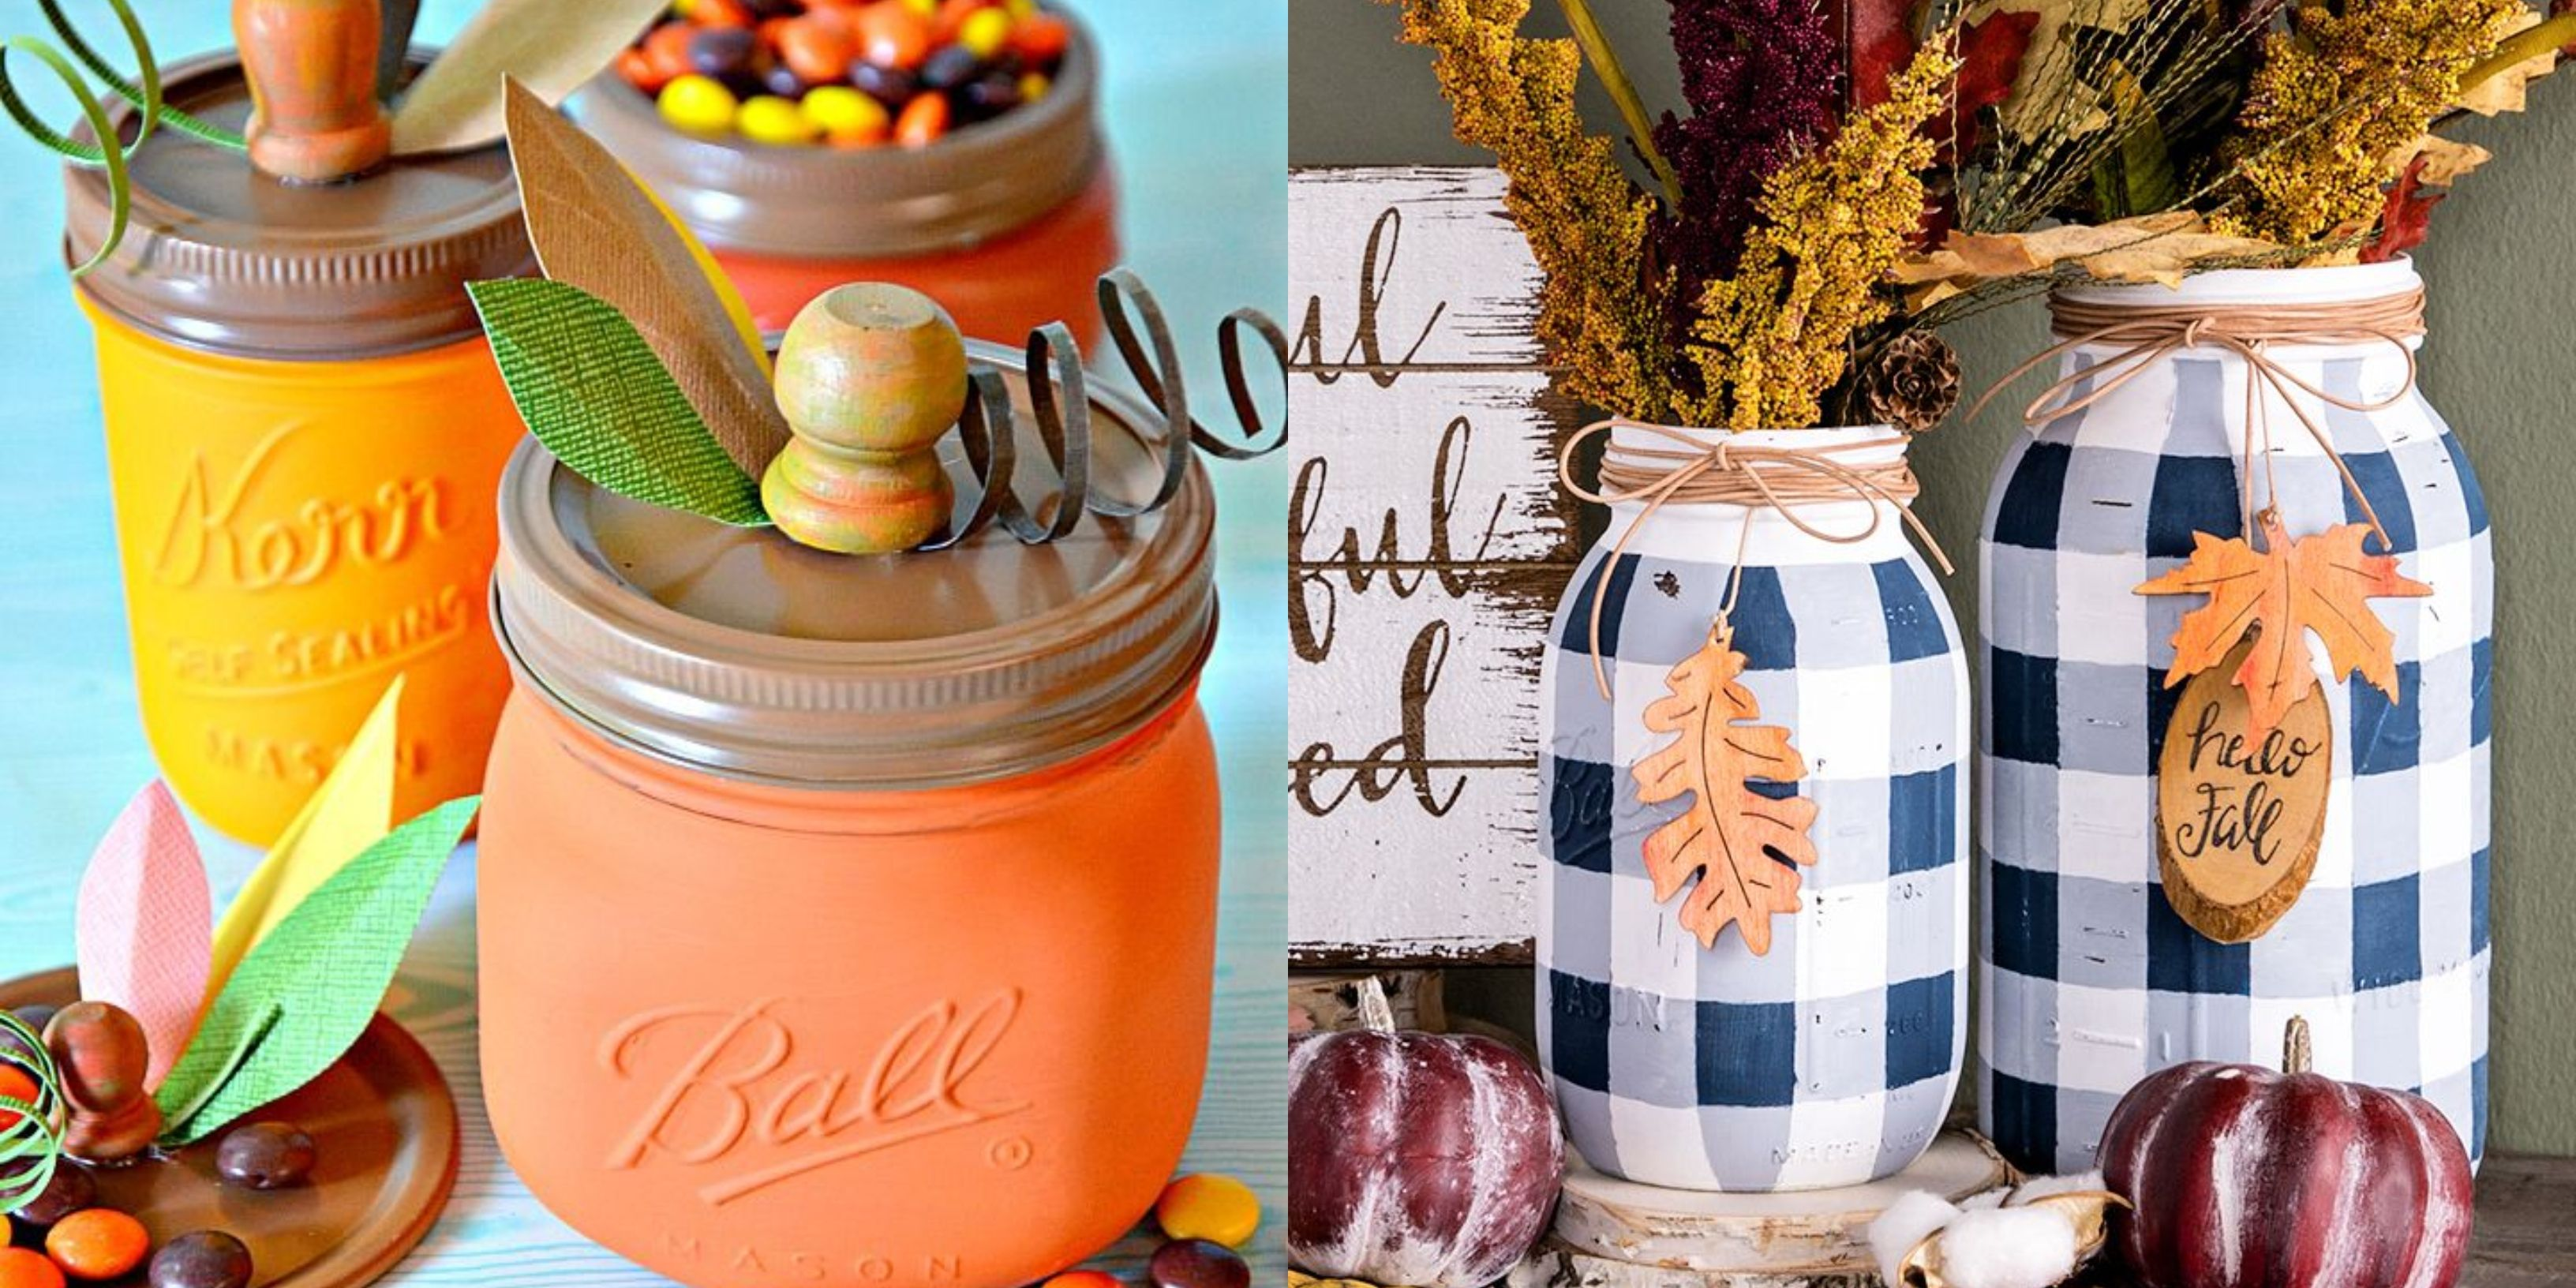 29 Mason Jar Fall Crafts - Autumn DIY Ideas with Mason Jars